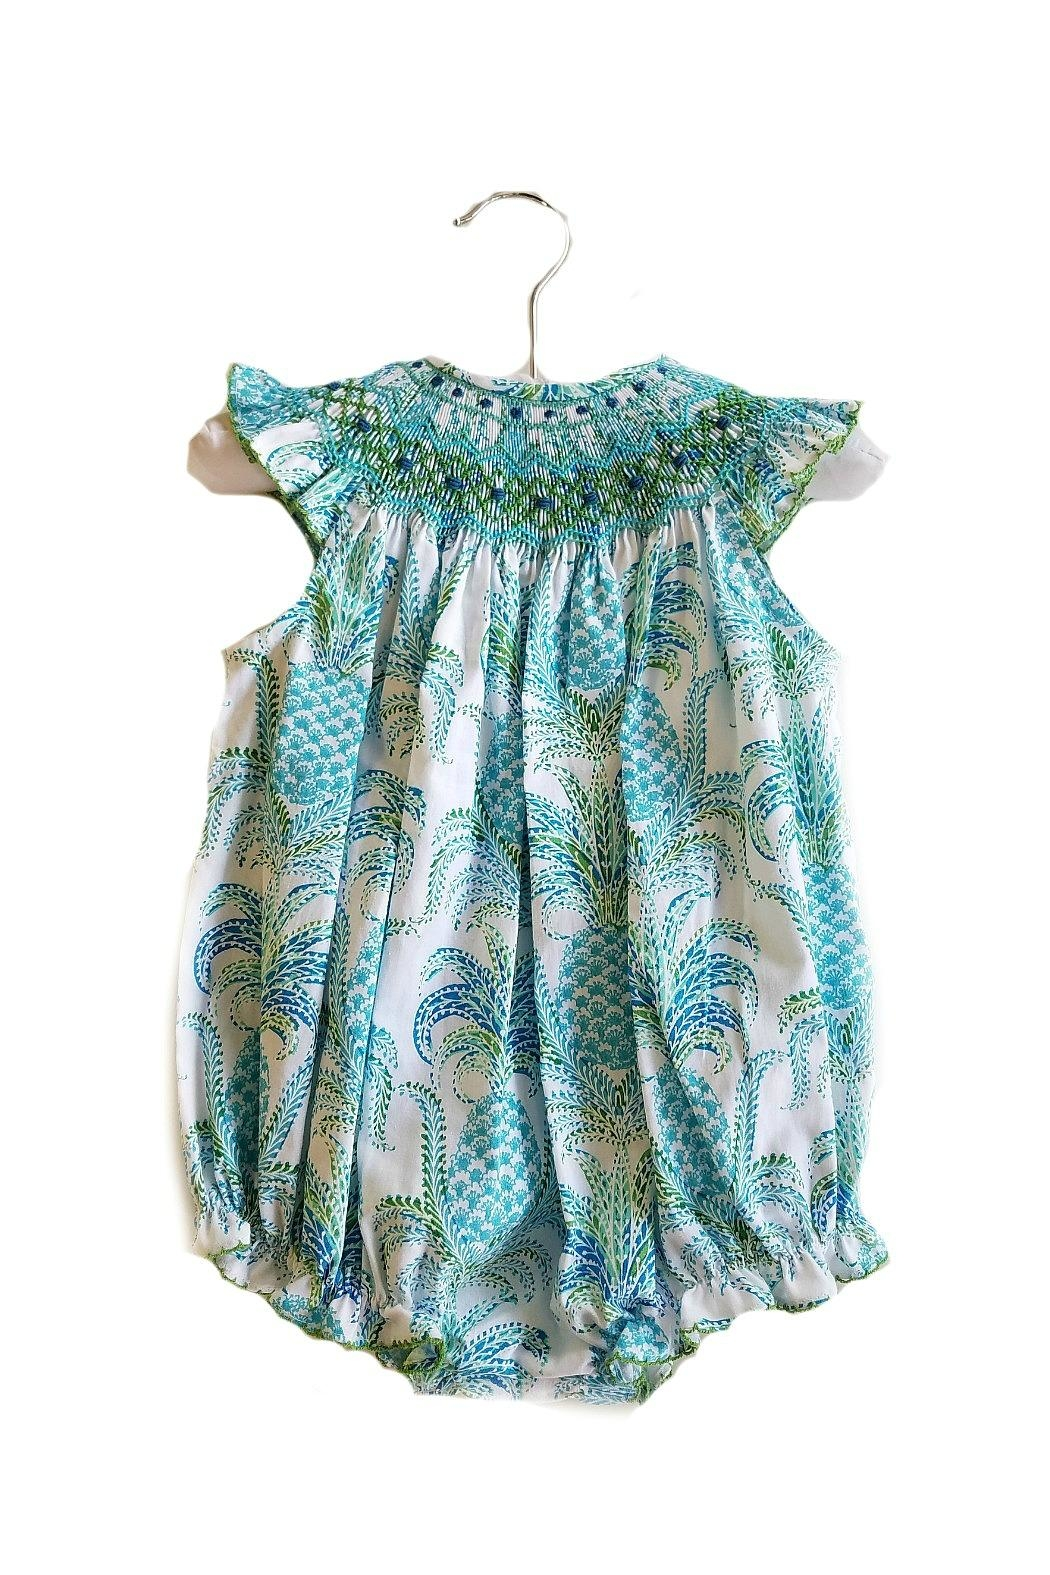 Le Za Me Pineapple-Print-Aqua-Blue-Smocked-Bubble - Main Image